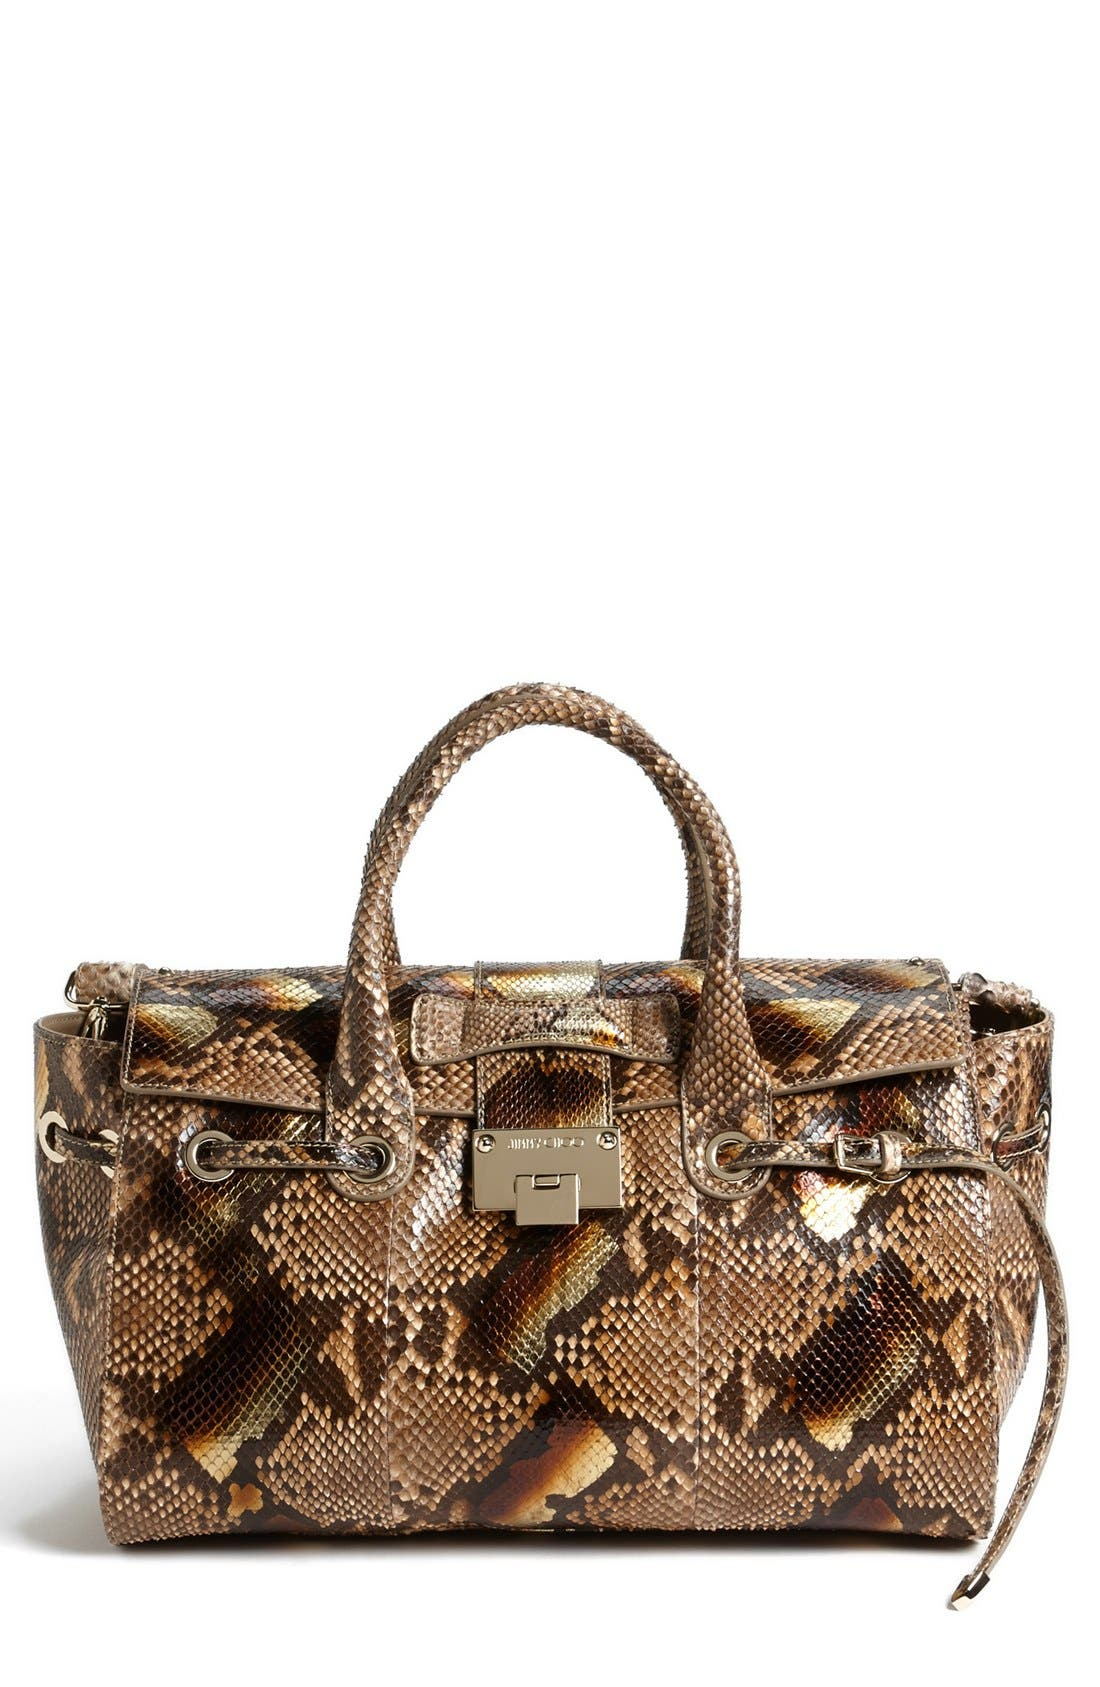 Alternate Image 1 Selected - Jimmy Choo 'Rosa' Metallic Dégradé Genuine Python Satchel